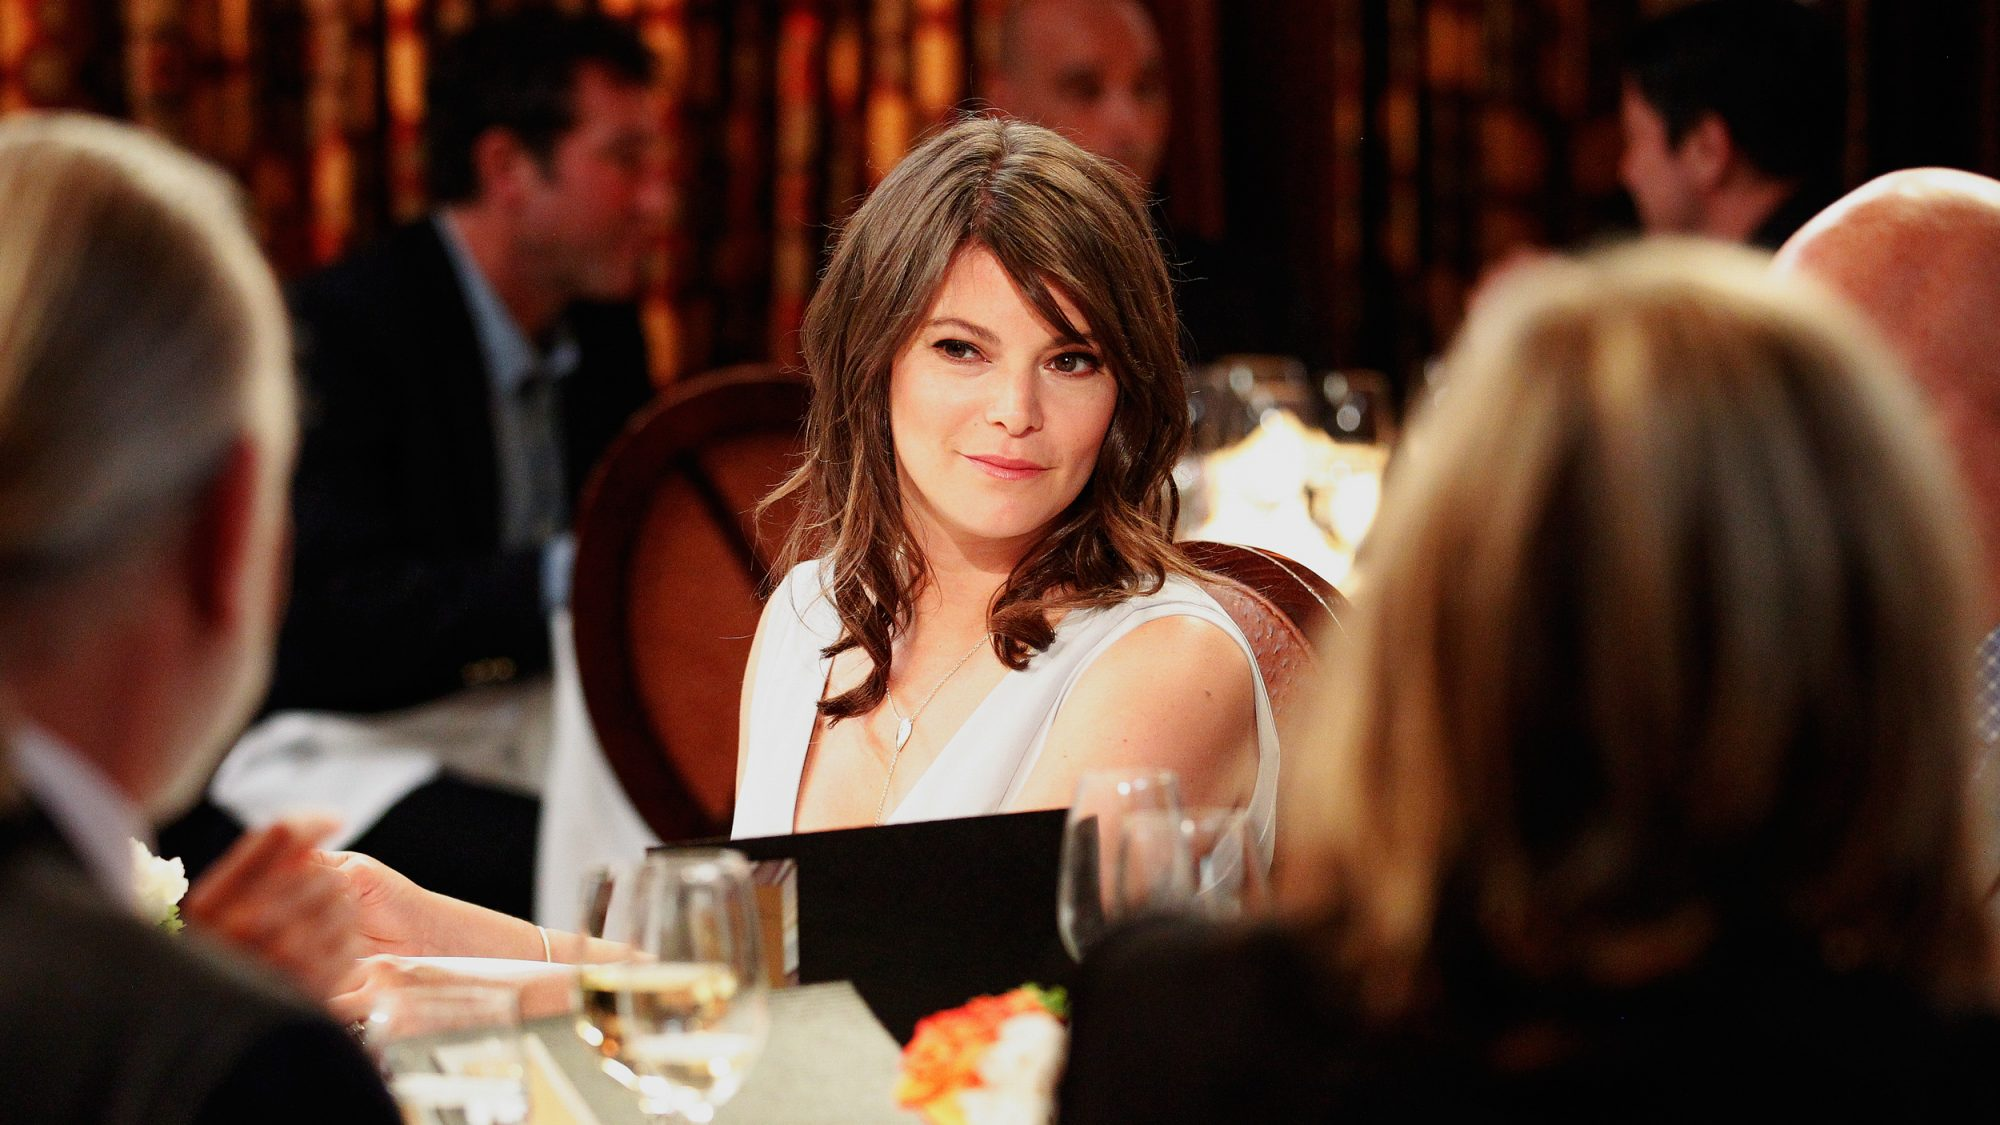 Gail Simmons Grub Street Diet